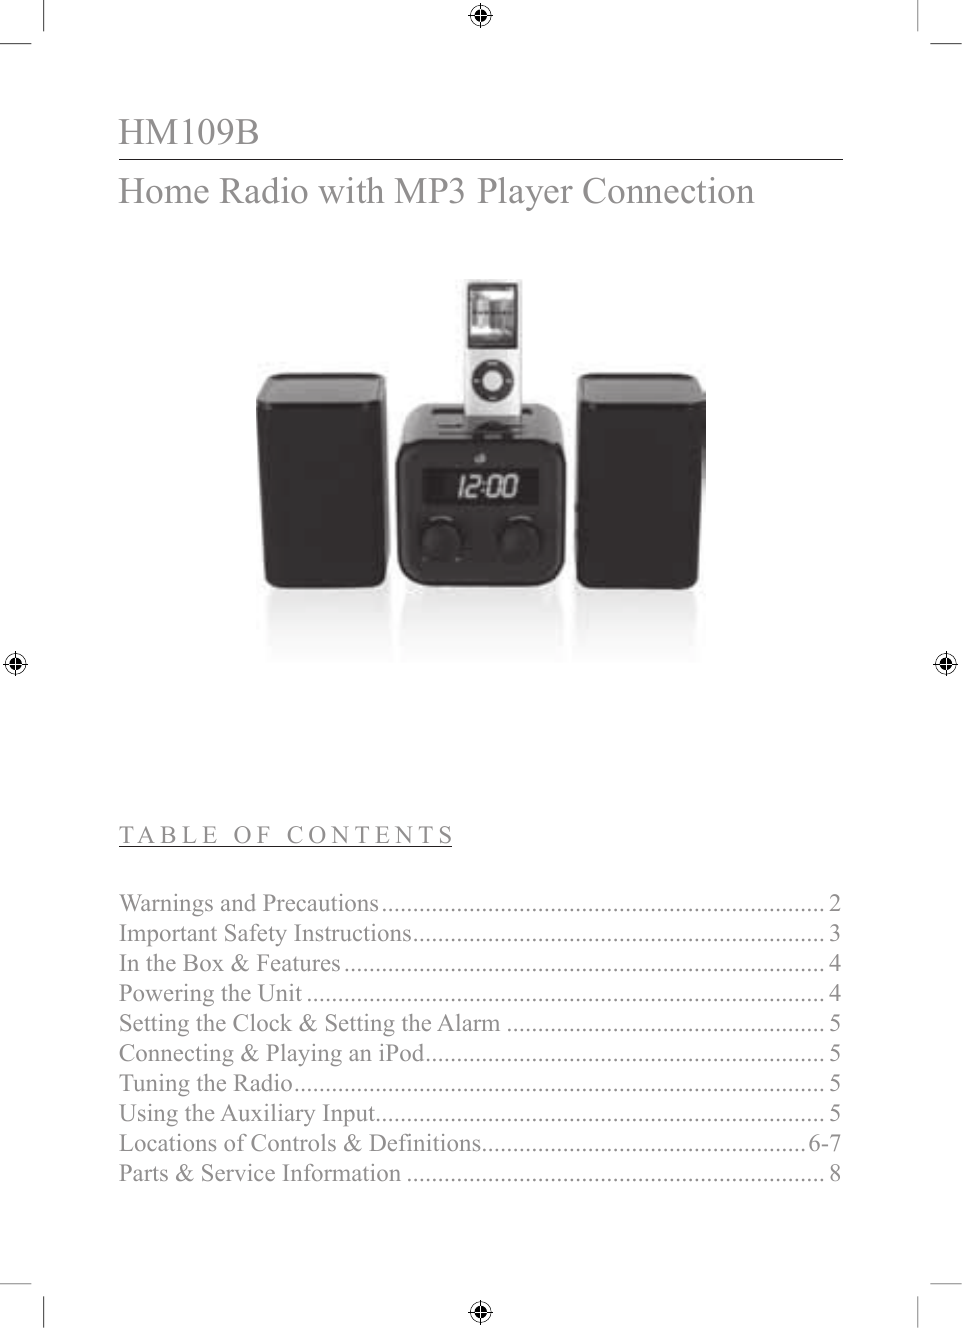 Gpx Hm109b Users Manual Home Images Mp3 Player Circuit Diagram